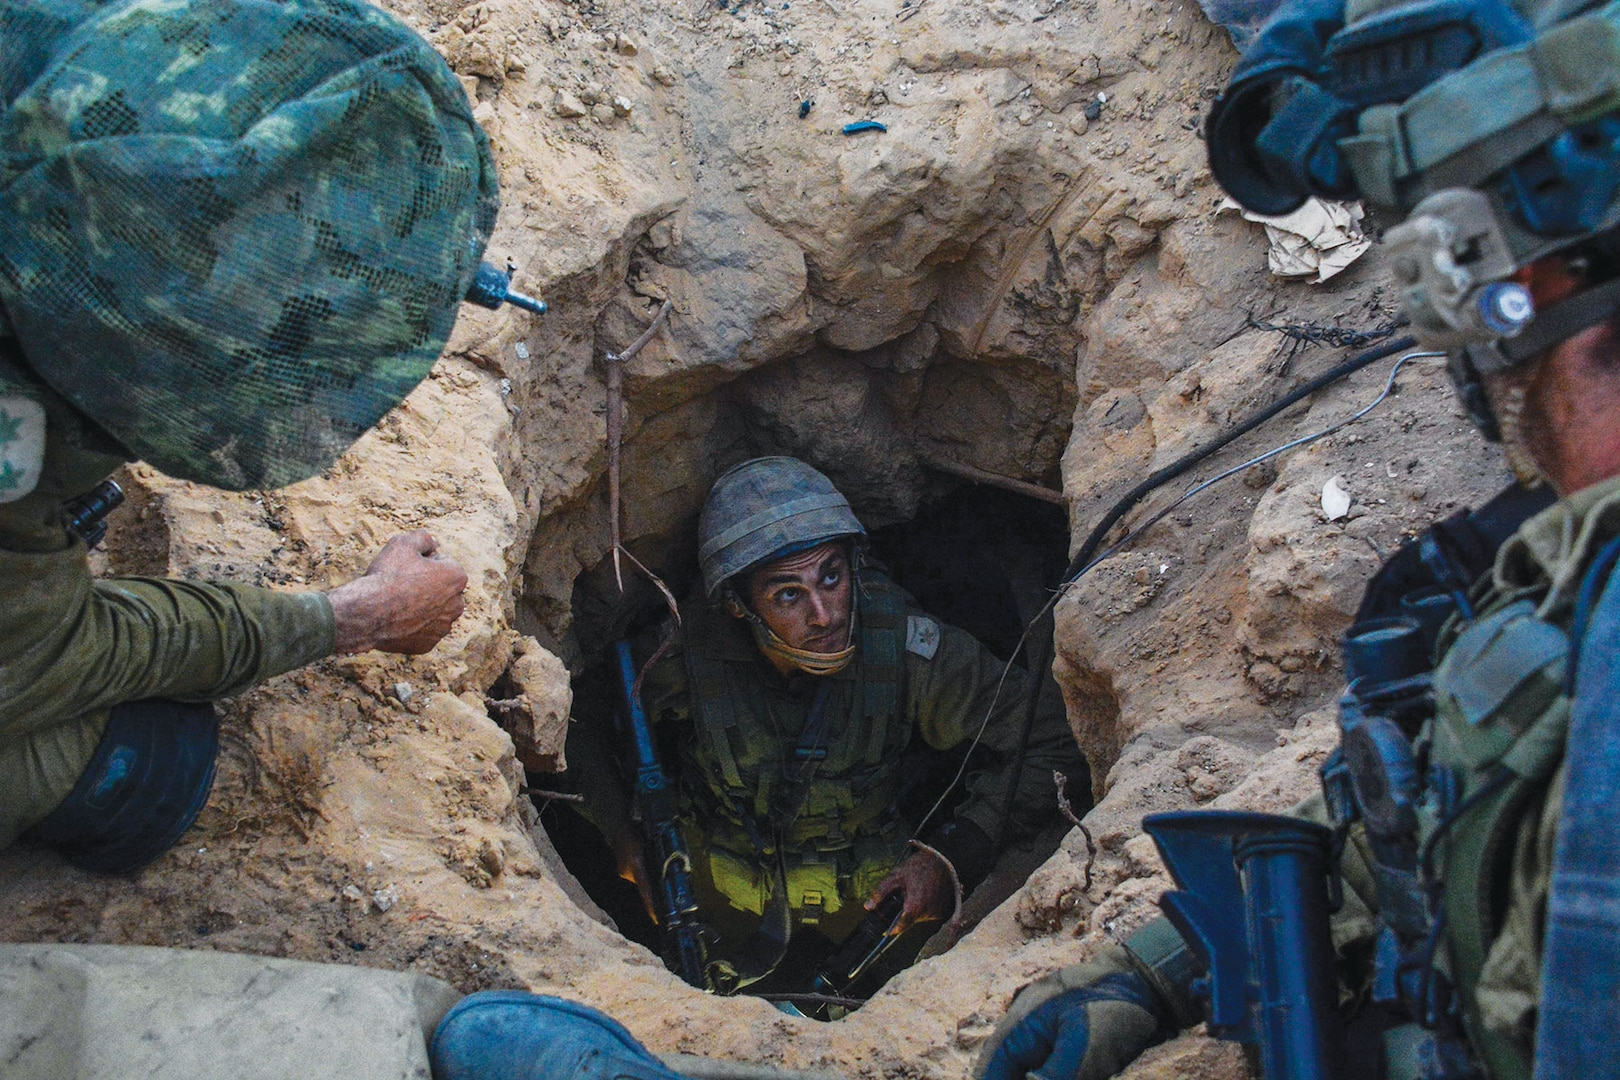 The IDF's paratroopers brigade operate within the Gaza Strip to find and disable Hamas' network terror tunnels and eliminate their threat to Israeli civilians. (Israel Defense Forces, 20 July 2014)